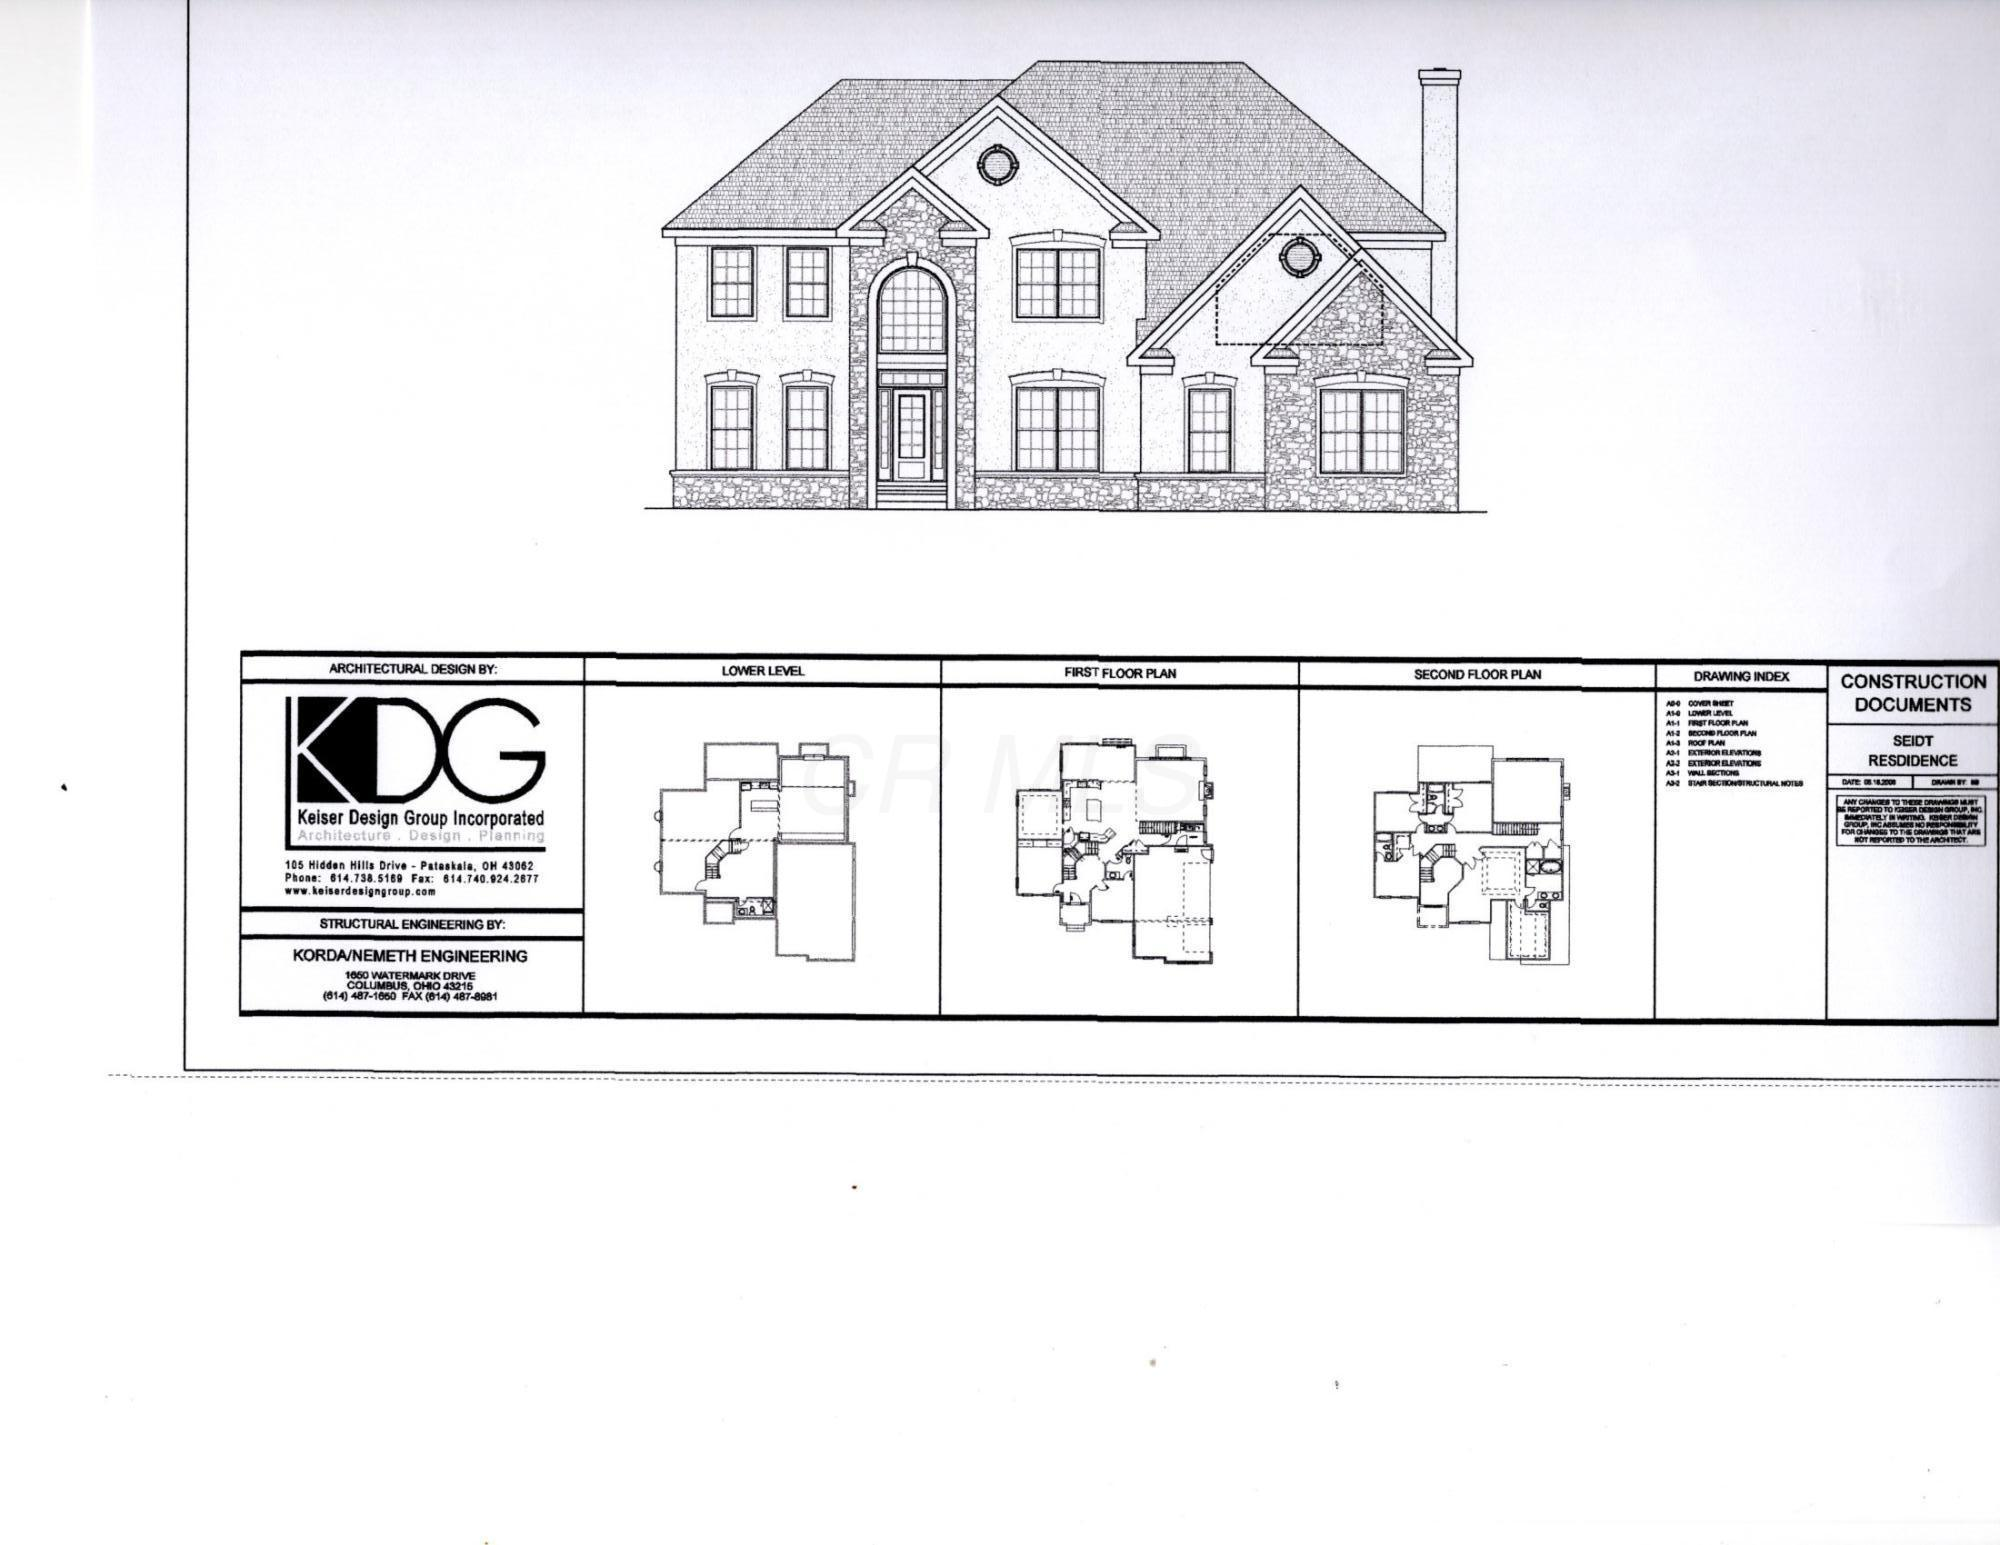 Photo of Bianca Dr. - Lot 176 Drive NW, Pickerington, OH 43147